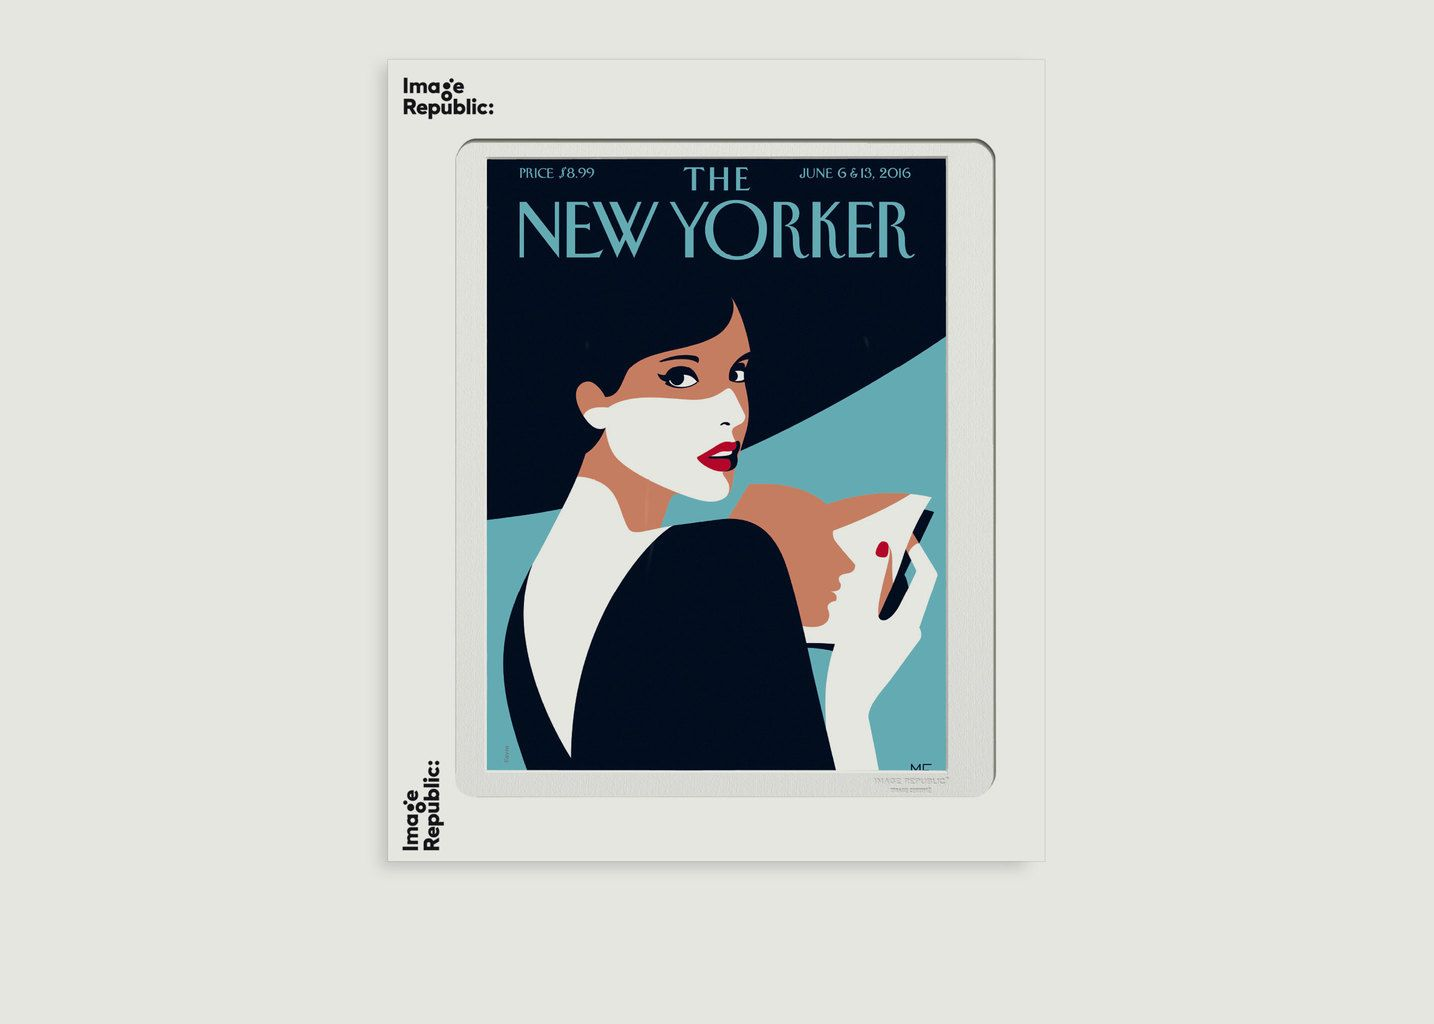 Affiche The New York 86 Favre Page Turner - Image Republic